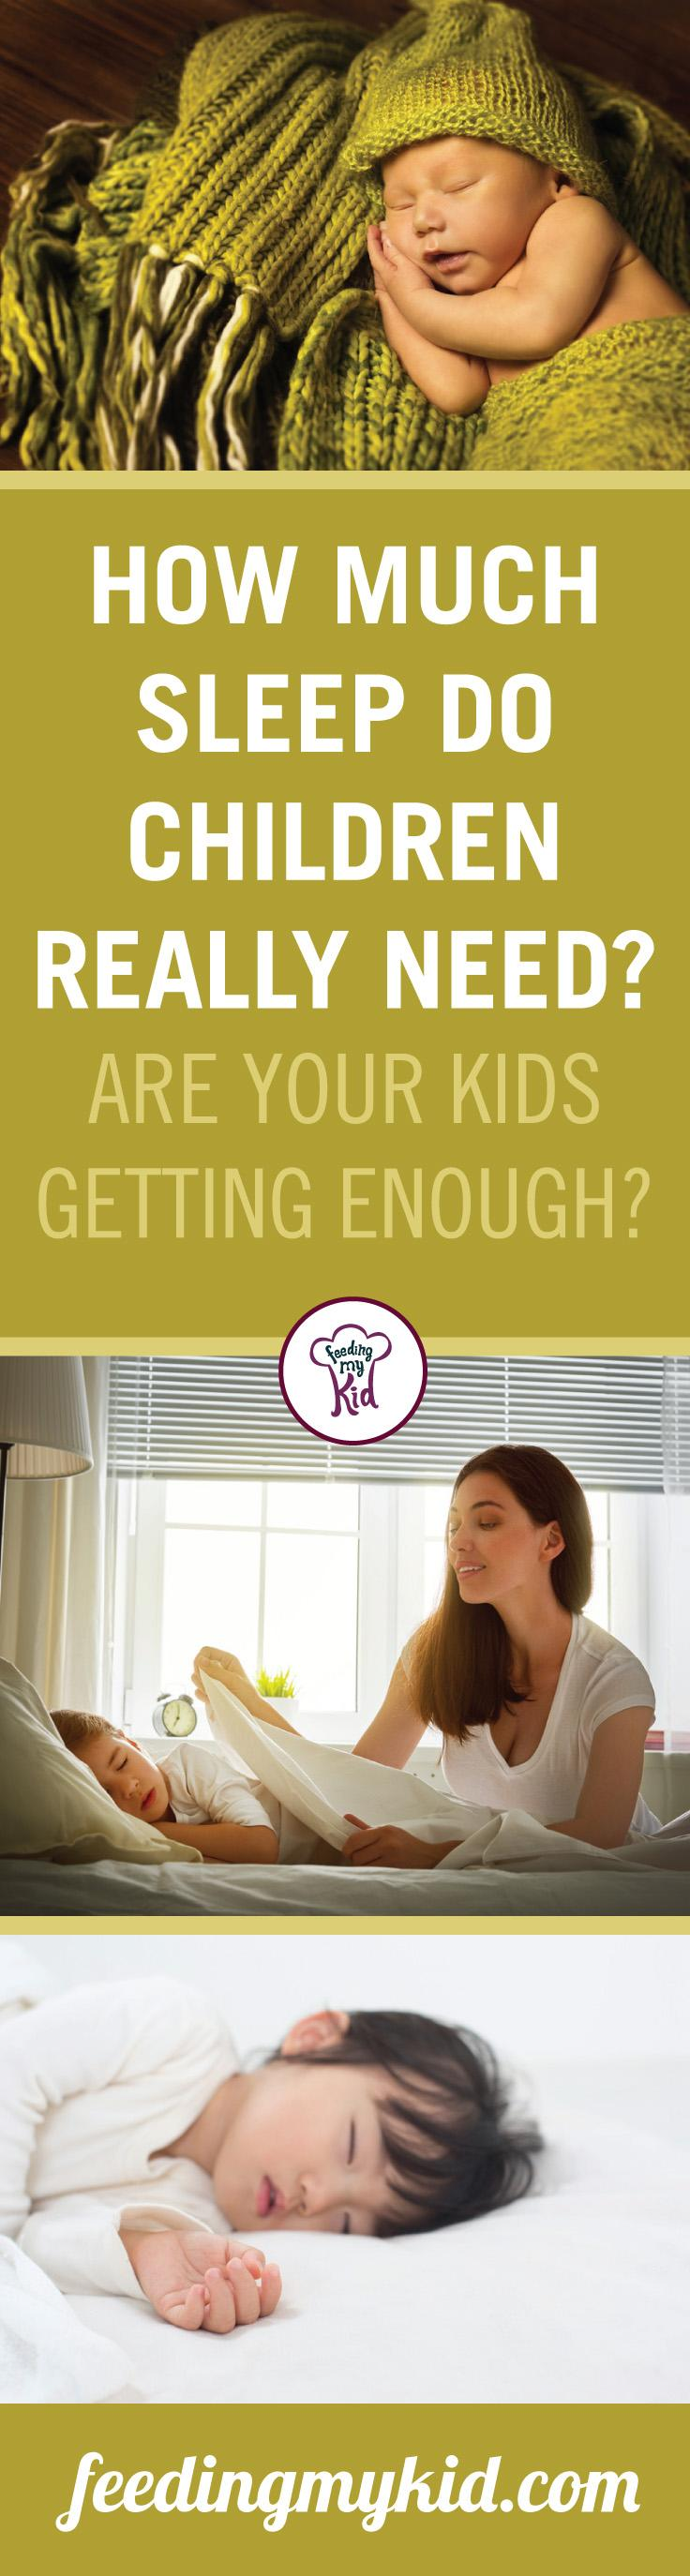 This is a must pin! We all know sleep is important! Is your child getting enough of it? Find out in this article about sleep! Feeding My Kid is a site filled with all the information you need on how to raise your kids and take care of your family; from healthy tips to nutritious recipes. We have everything you need! #childrenshealth #sleep